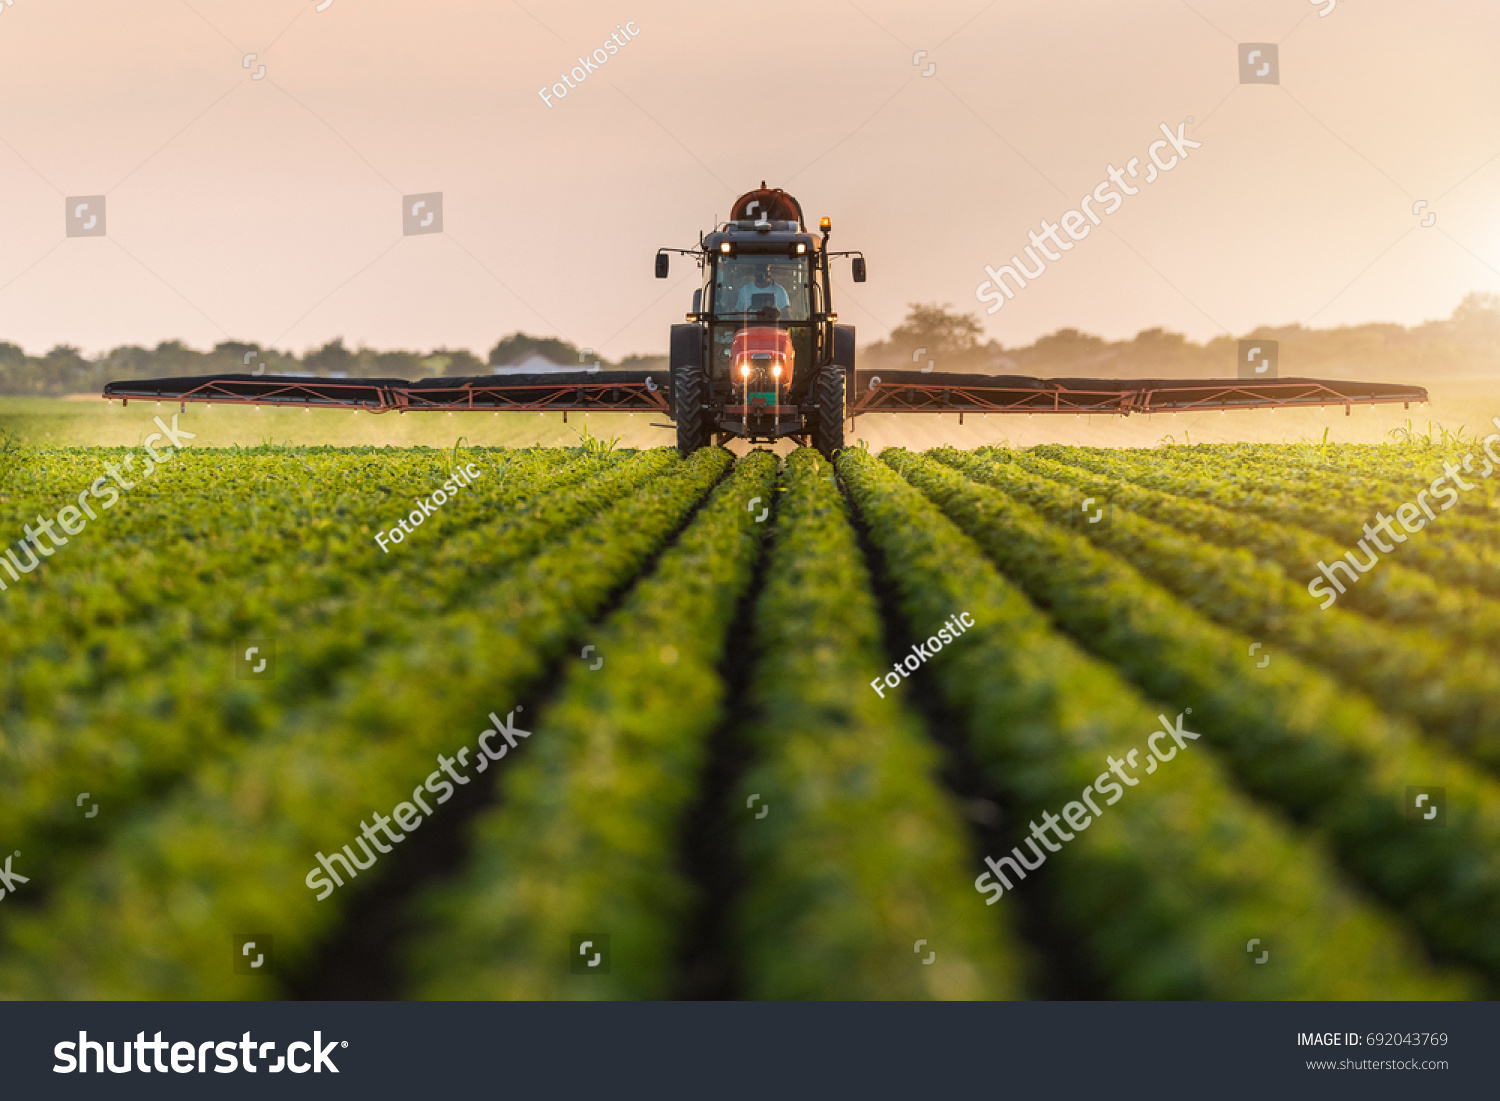 Tractor spraying pesticides on soybean field  with sprayer at spring #692043769